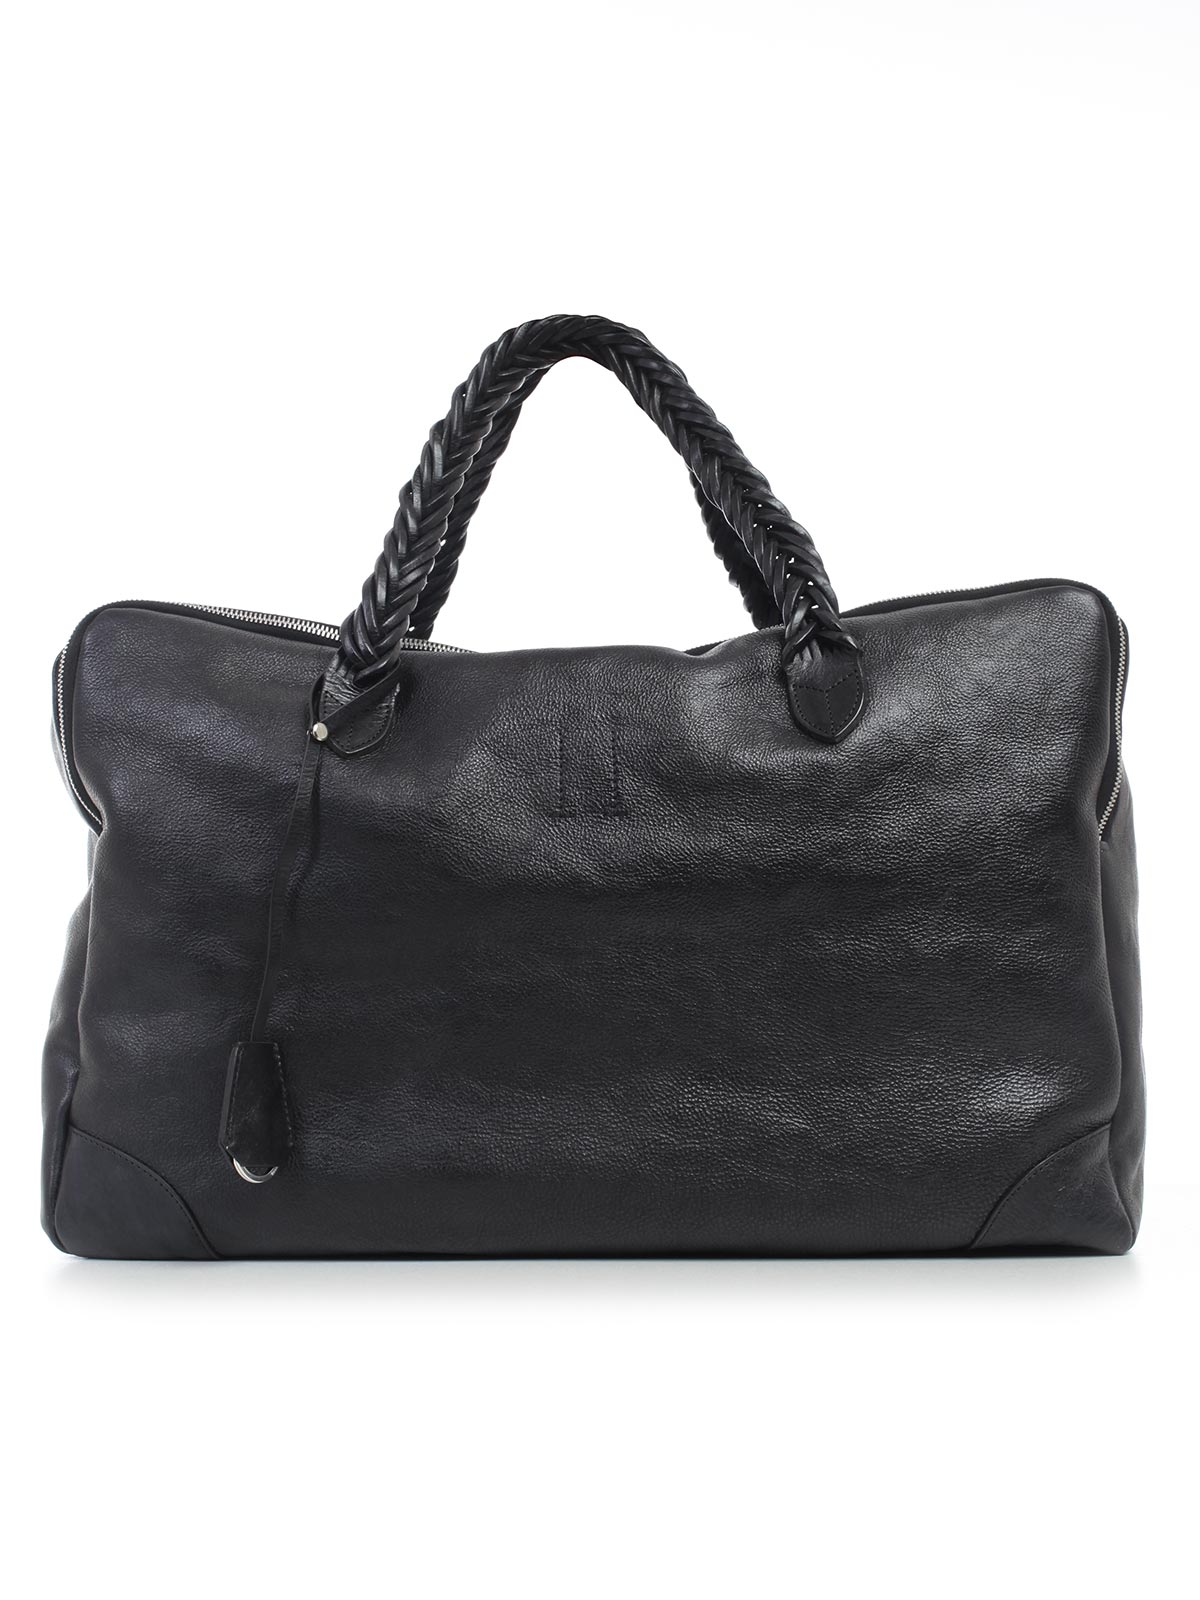 Picture of Golden Goose Deluxe Brand Totes